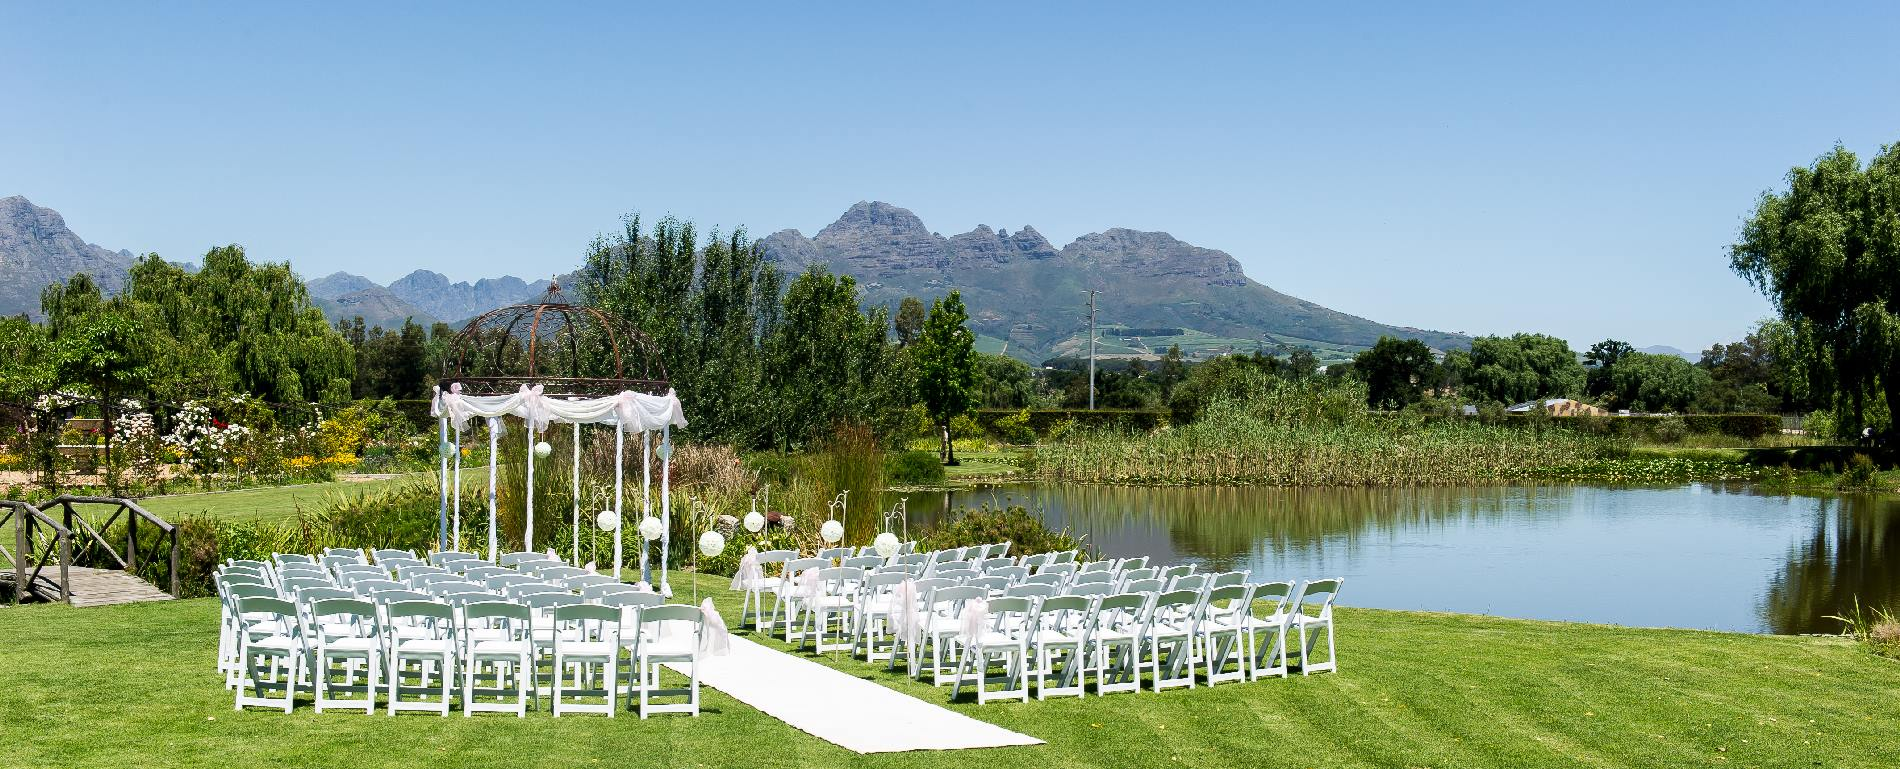 Hudsons Garden Wedding Ceremonies Stellenbosch